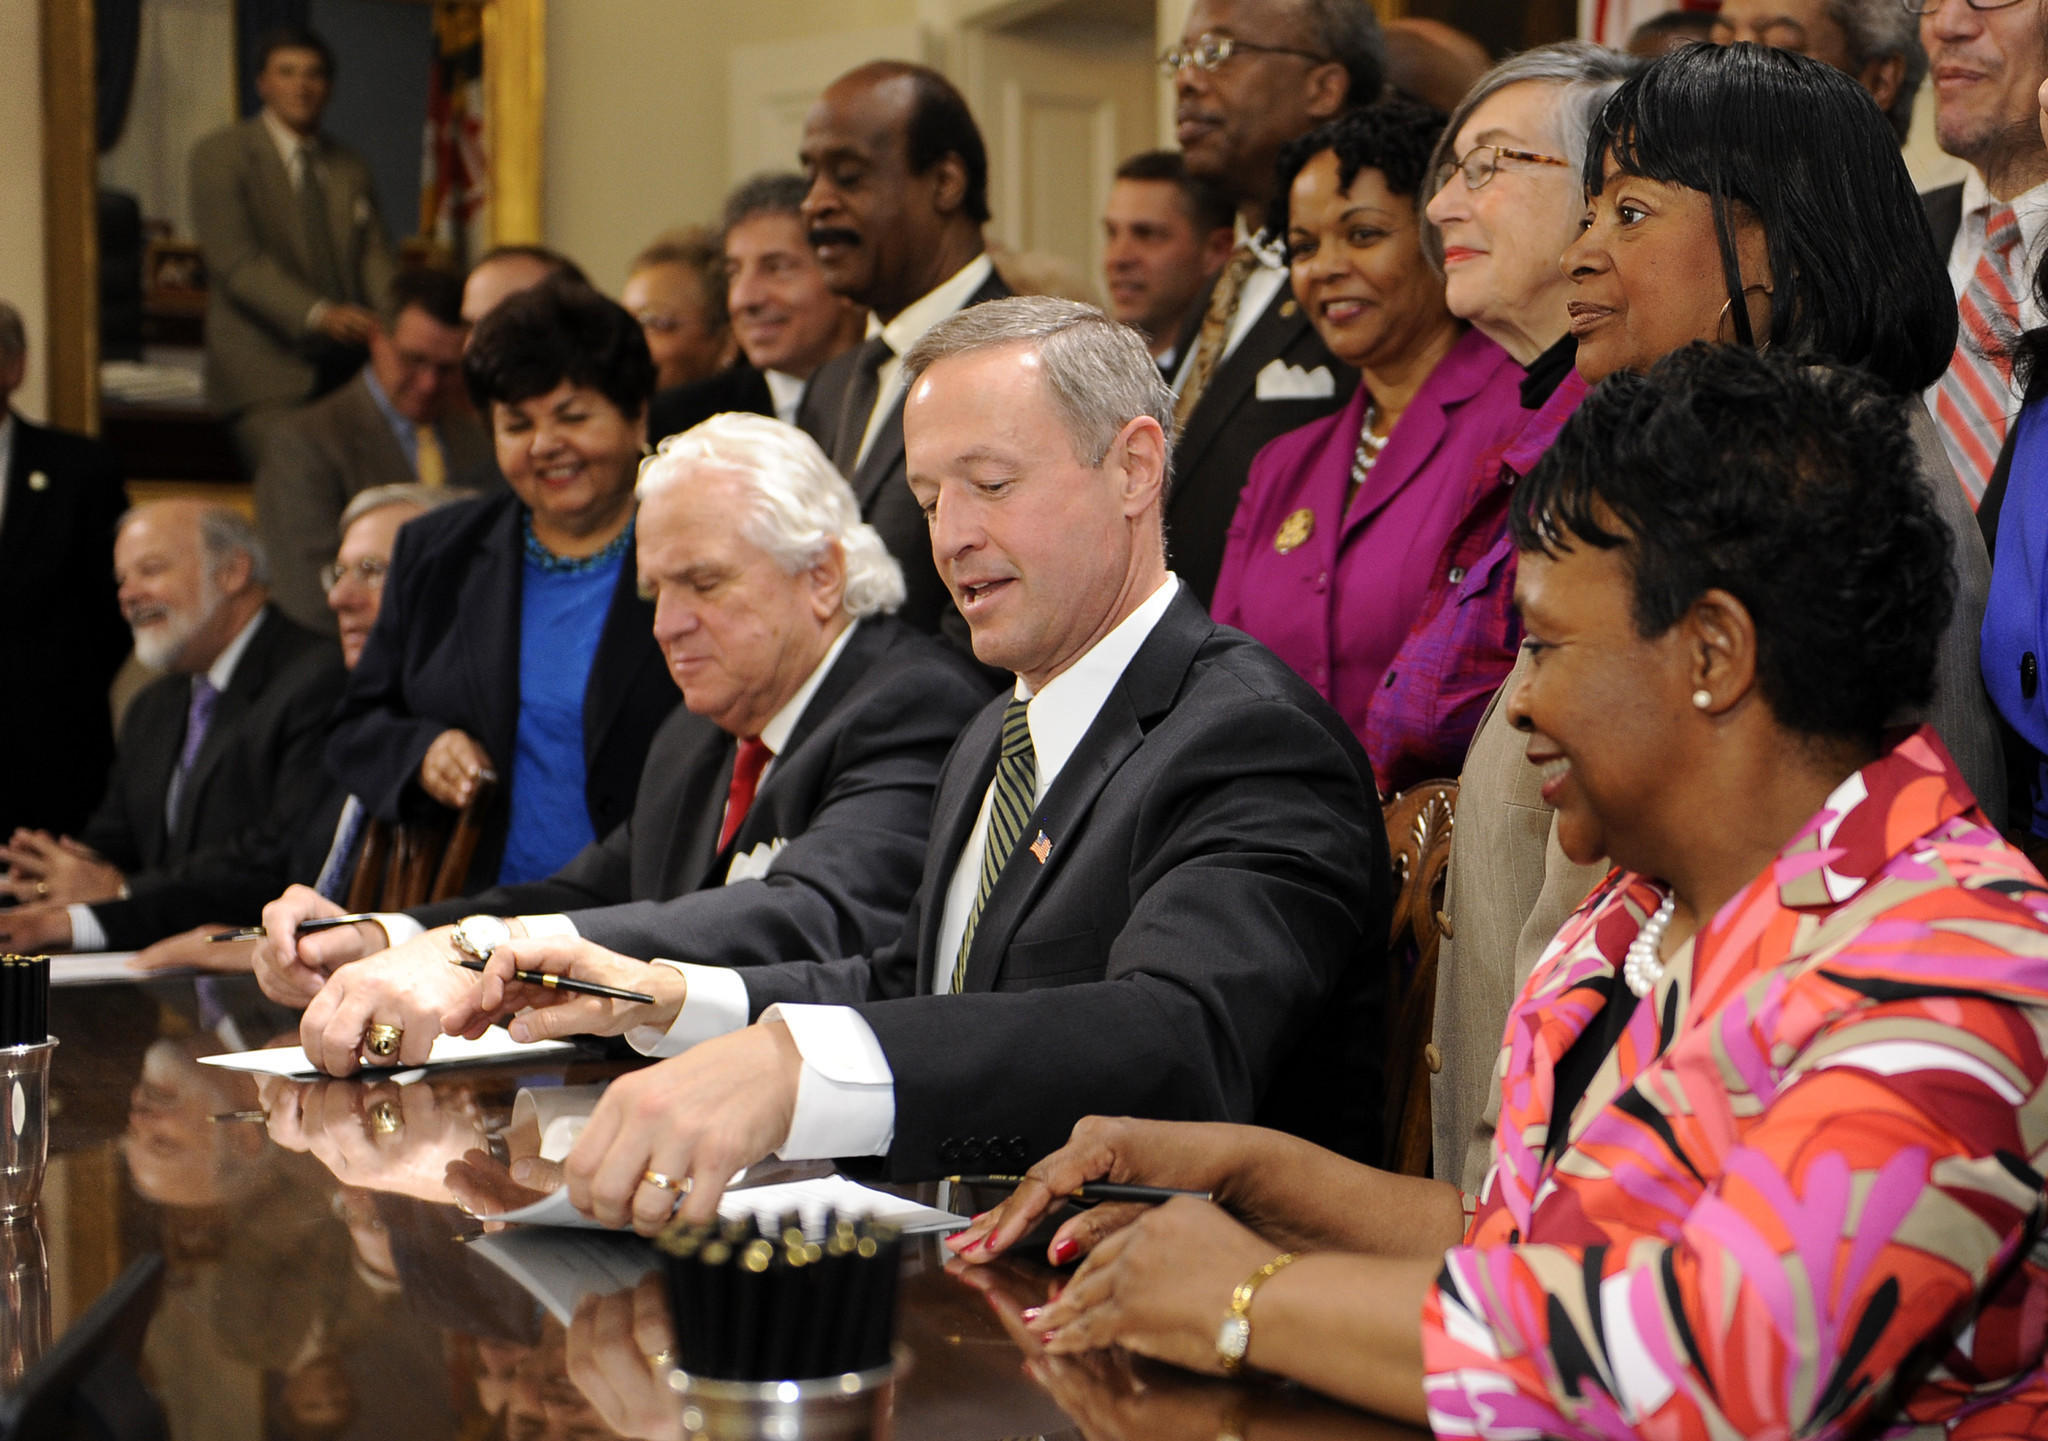 Seated at table left to right as the minimum wage bill is signed into law at the State House in Annapolis: Senate President Thomas V. Mike Miller Jr., Governor Martin O'Malley, Speaker Pro Tem of the House of Delegates Adrienne Jones.